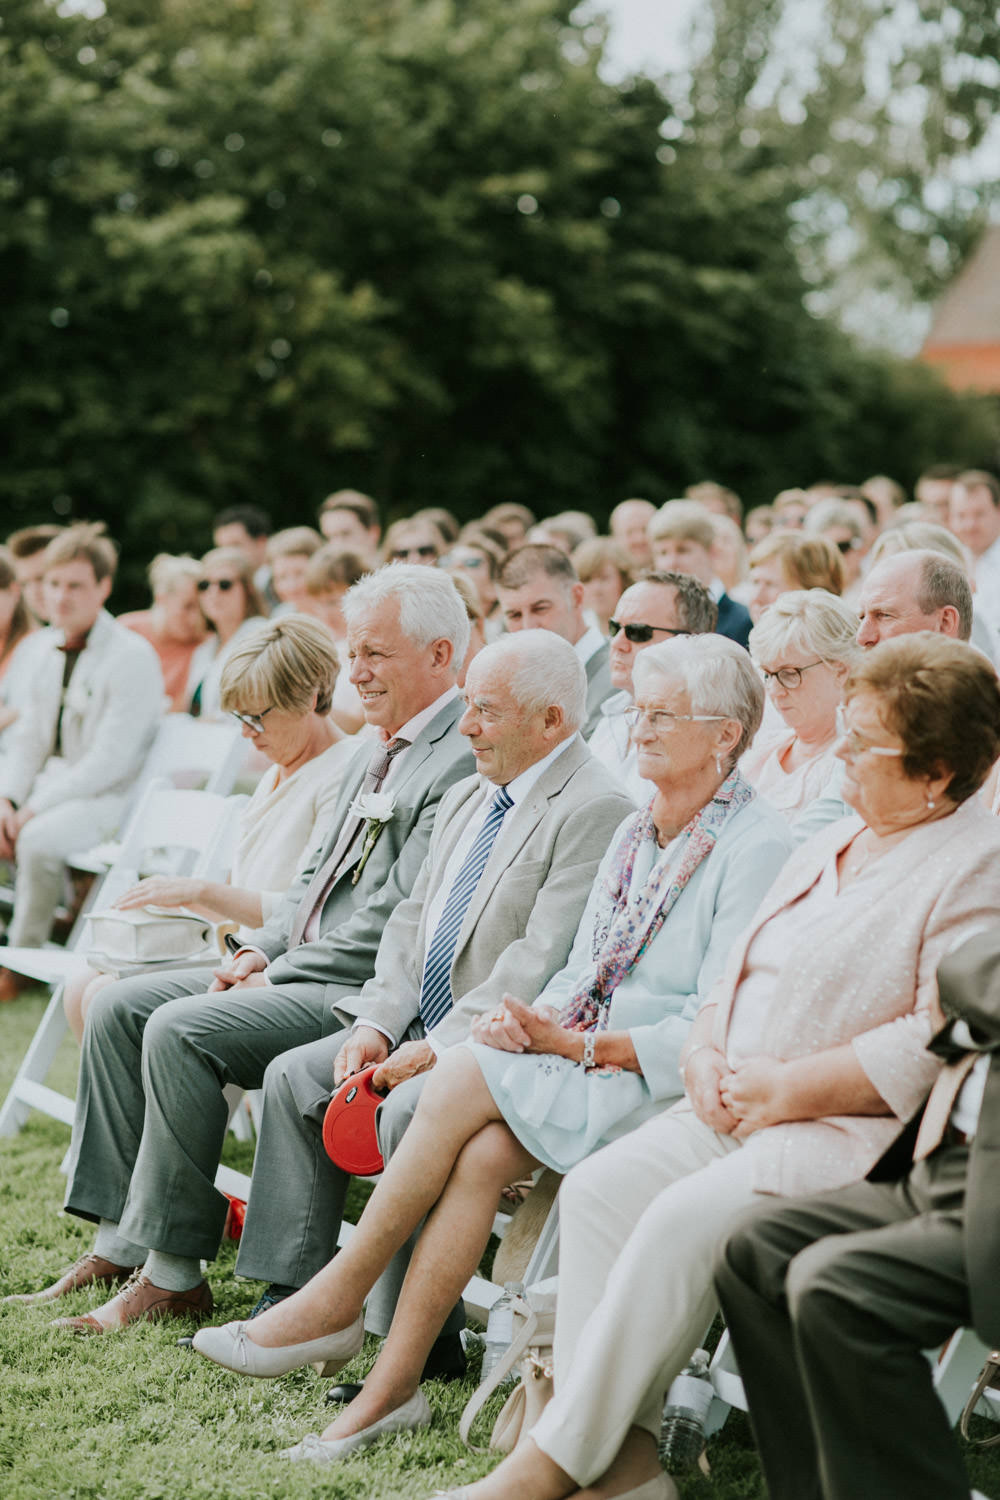 Wedding ceremony by Stories by Mabel at Hoeve Engelendael, Sint-Laureins